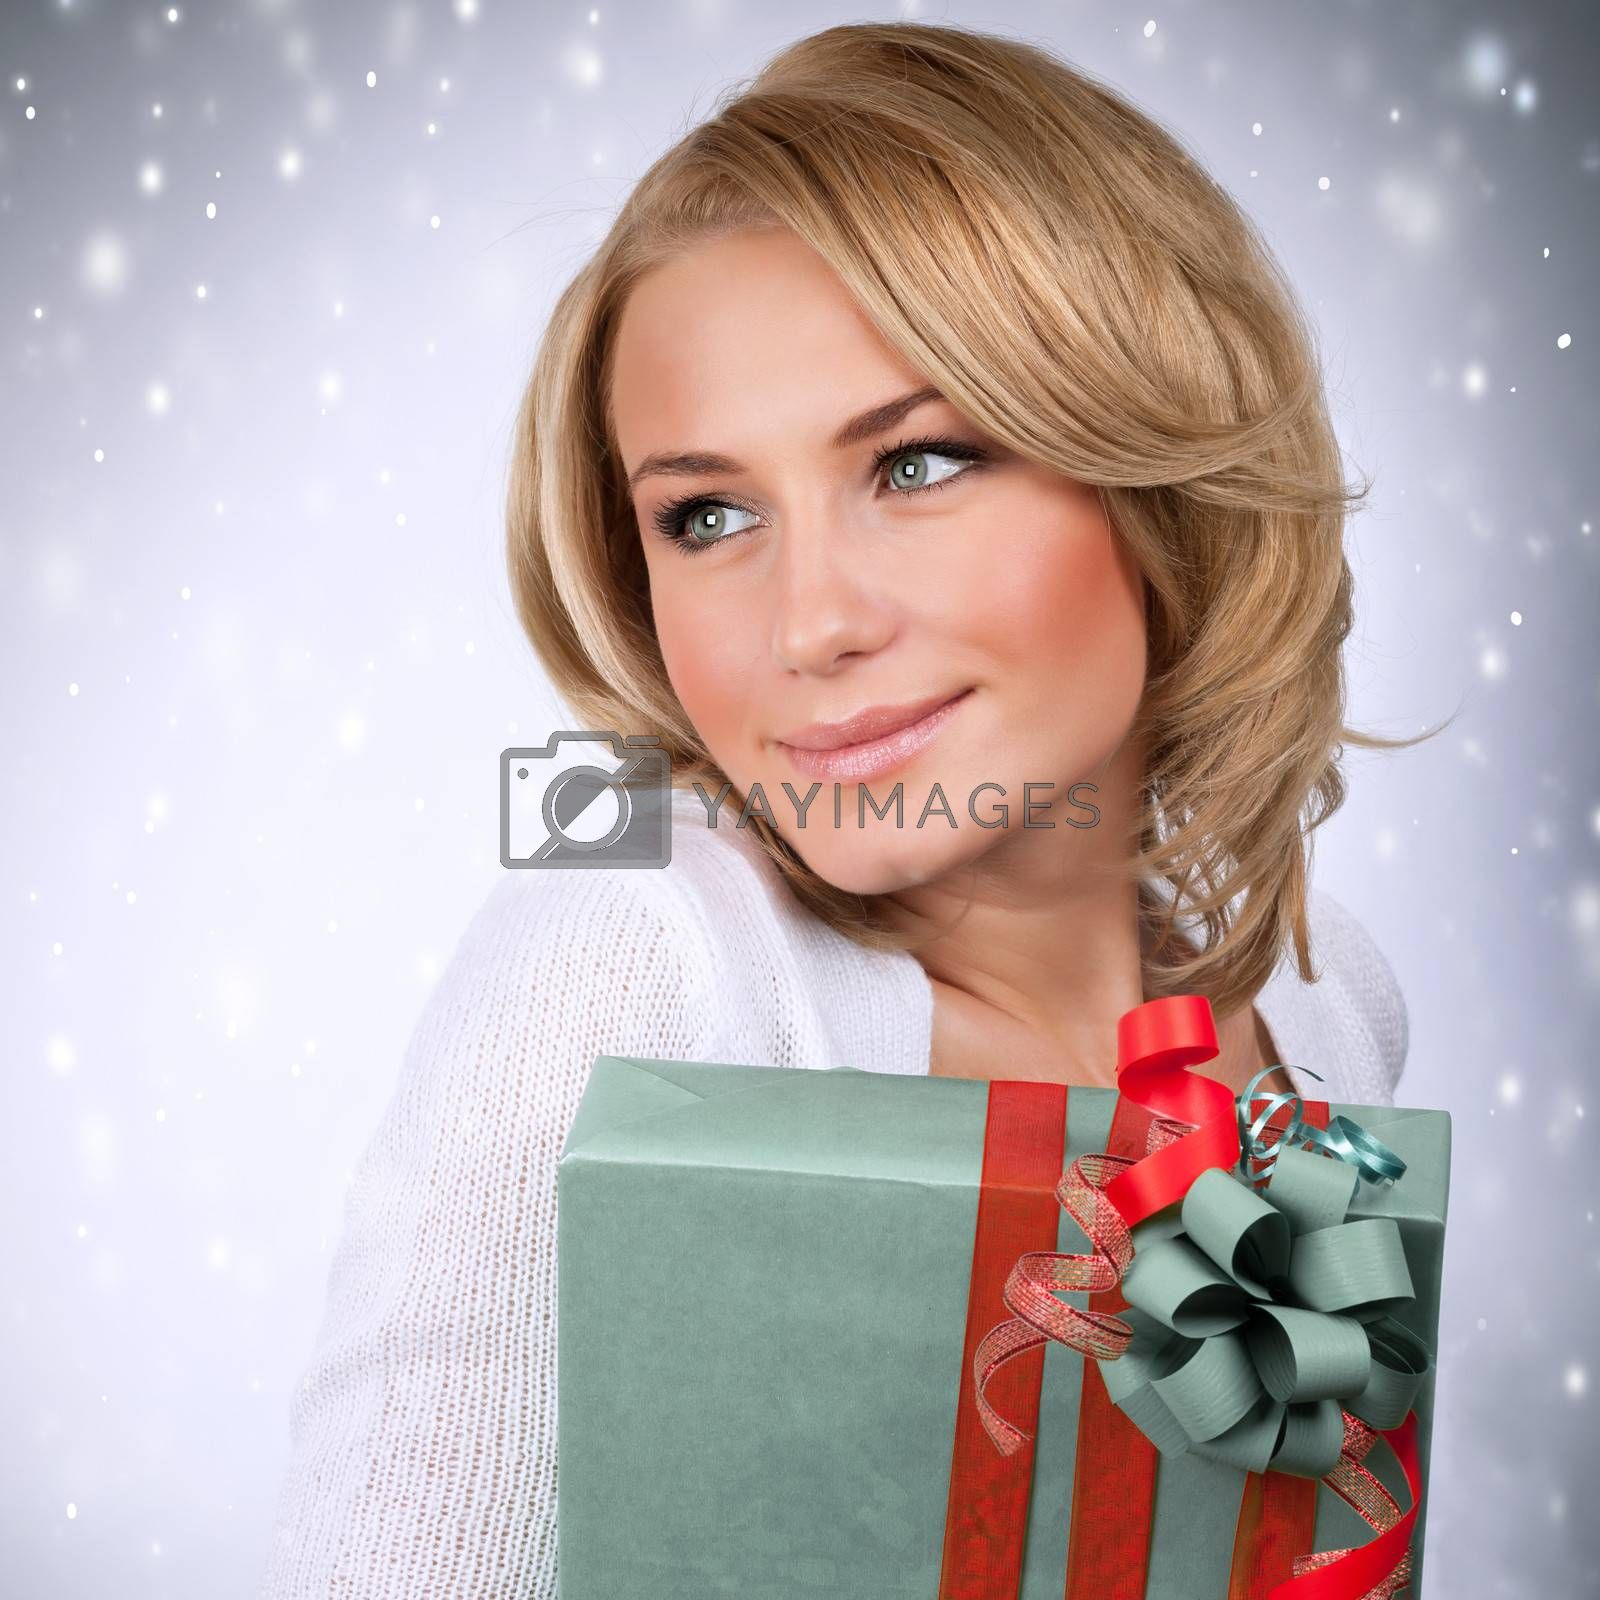 Portrait of sensual blonde girl holding stylish wrapped gift box, Christmas time party, New Year surprise, happiness and enjoyment concept